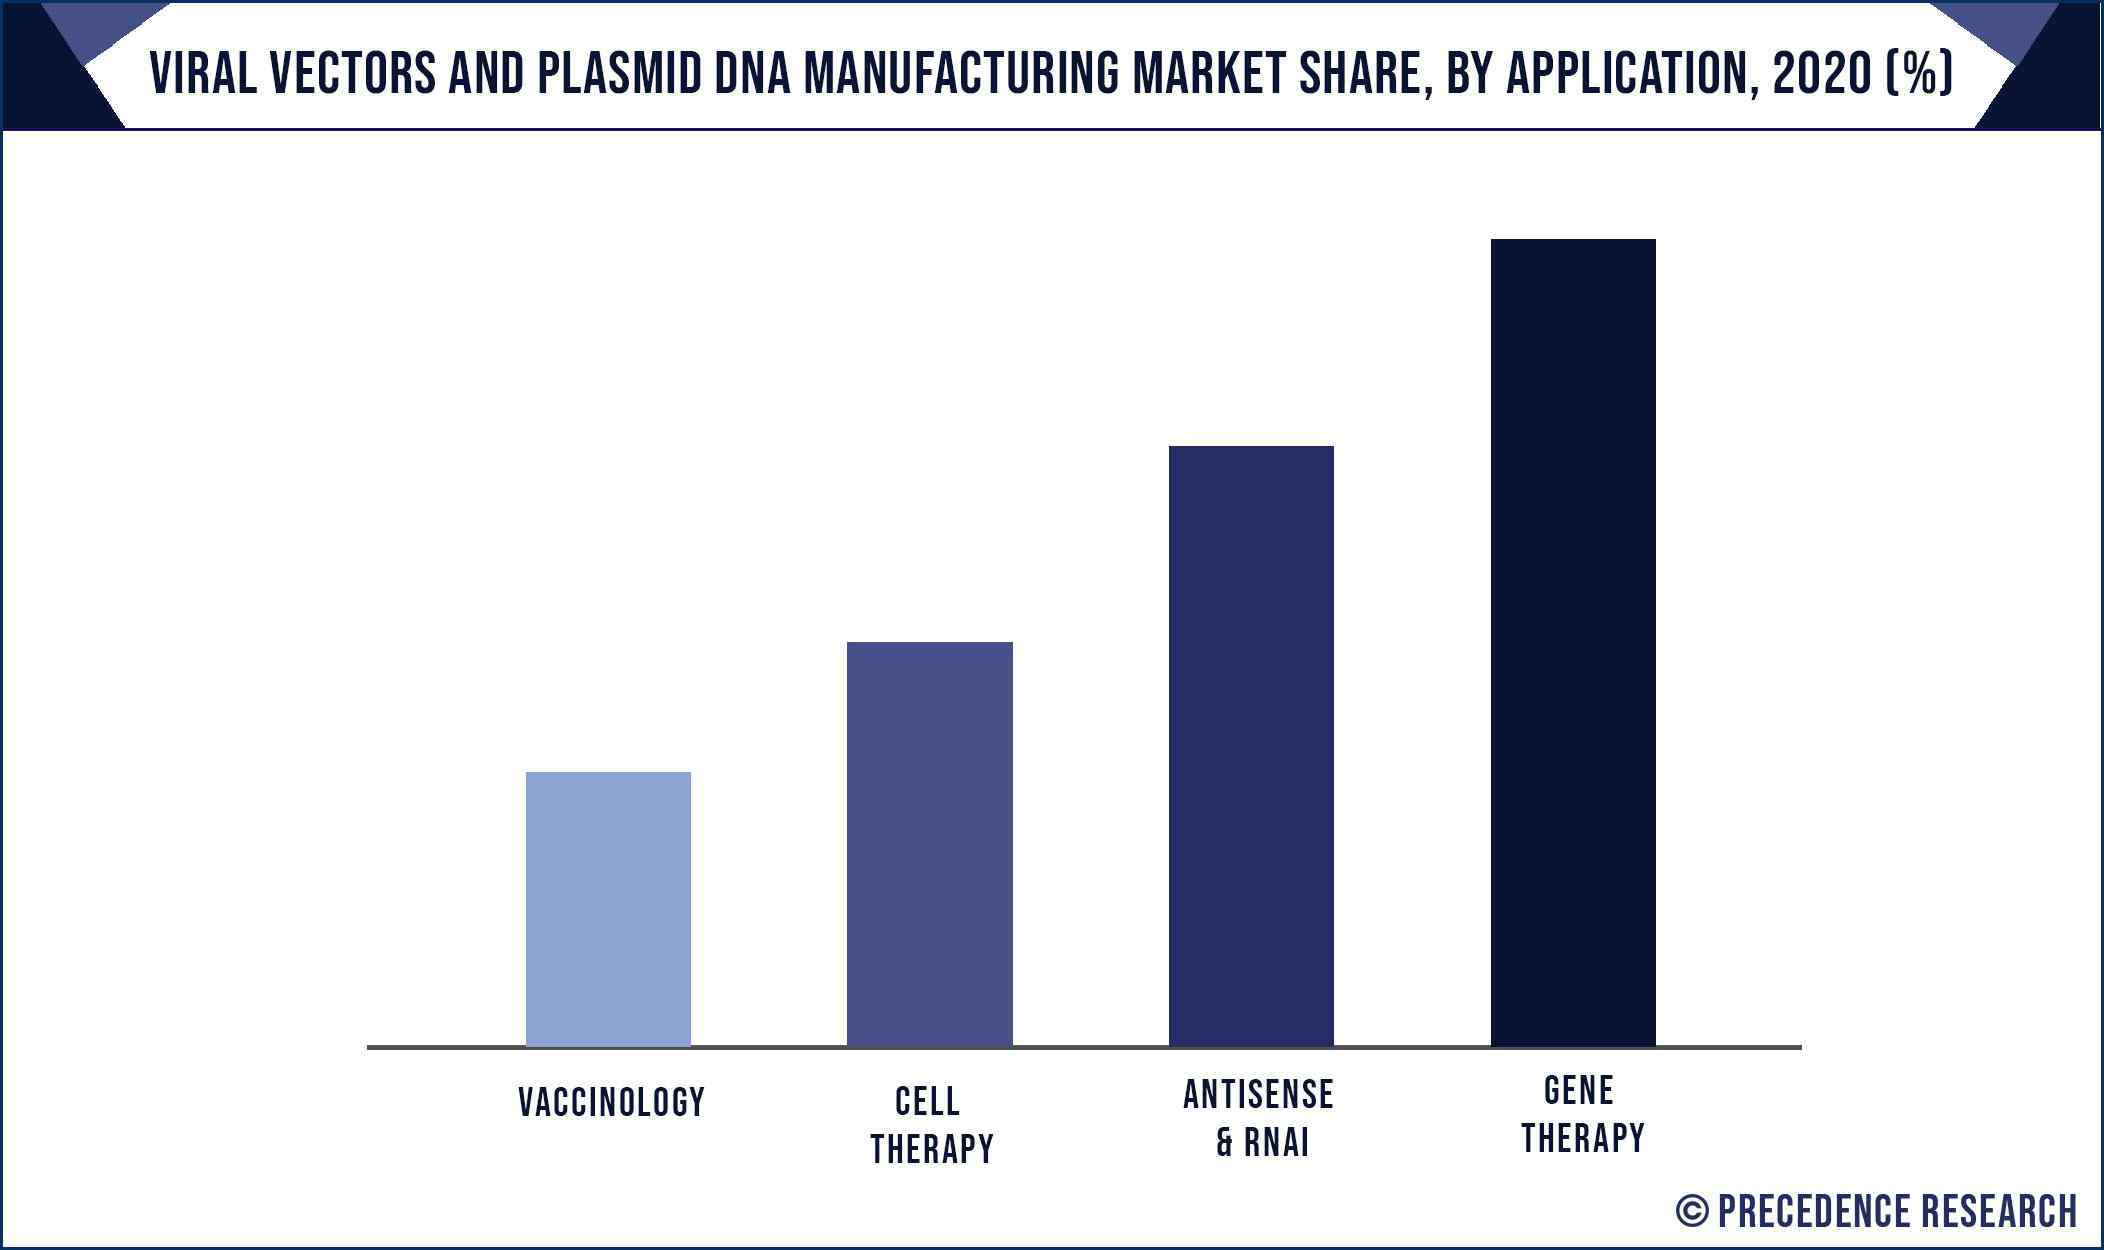 Viral Vectors and Plasmid DNA Manufacturing Market Share, By Application, 2020 (%)